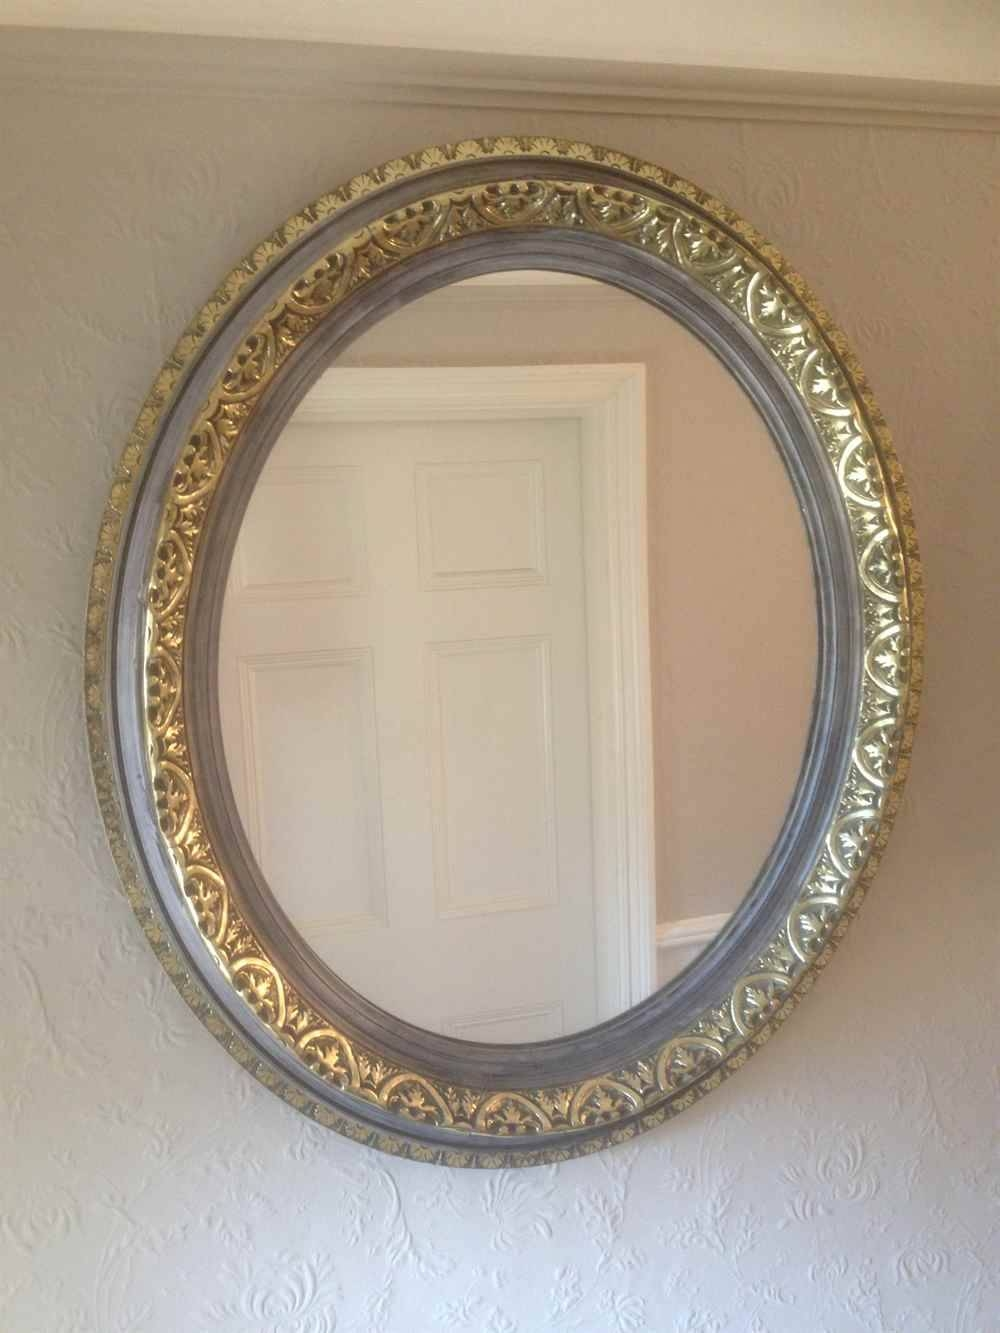 A Fabulous Pair Of Antique 19Th Century French Carved Wood Gilt Pertaining To French Oval Mirrors (View 4 of 15)